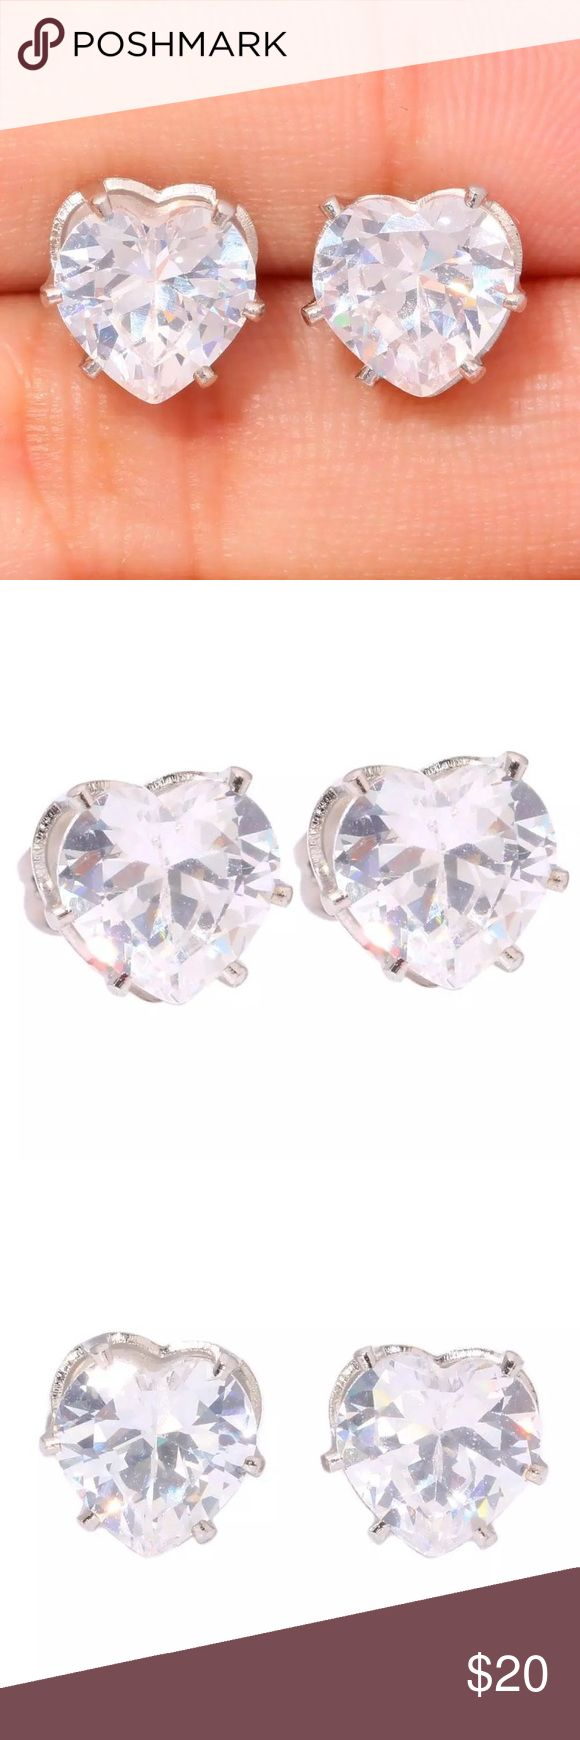 Authentic White Topaz & Stainless Steel Earrings Boutique